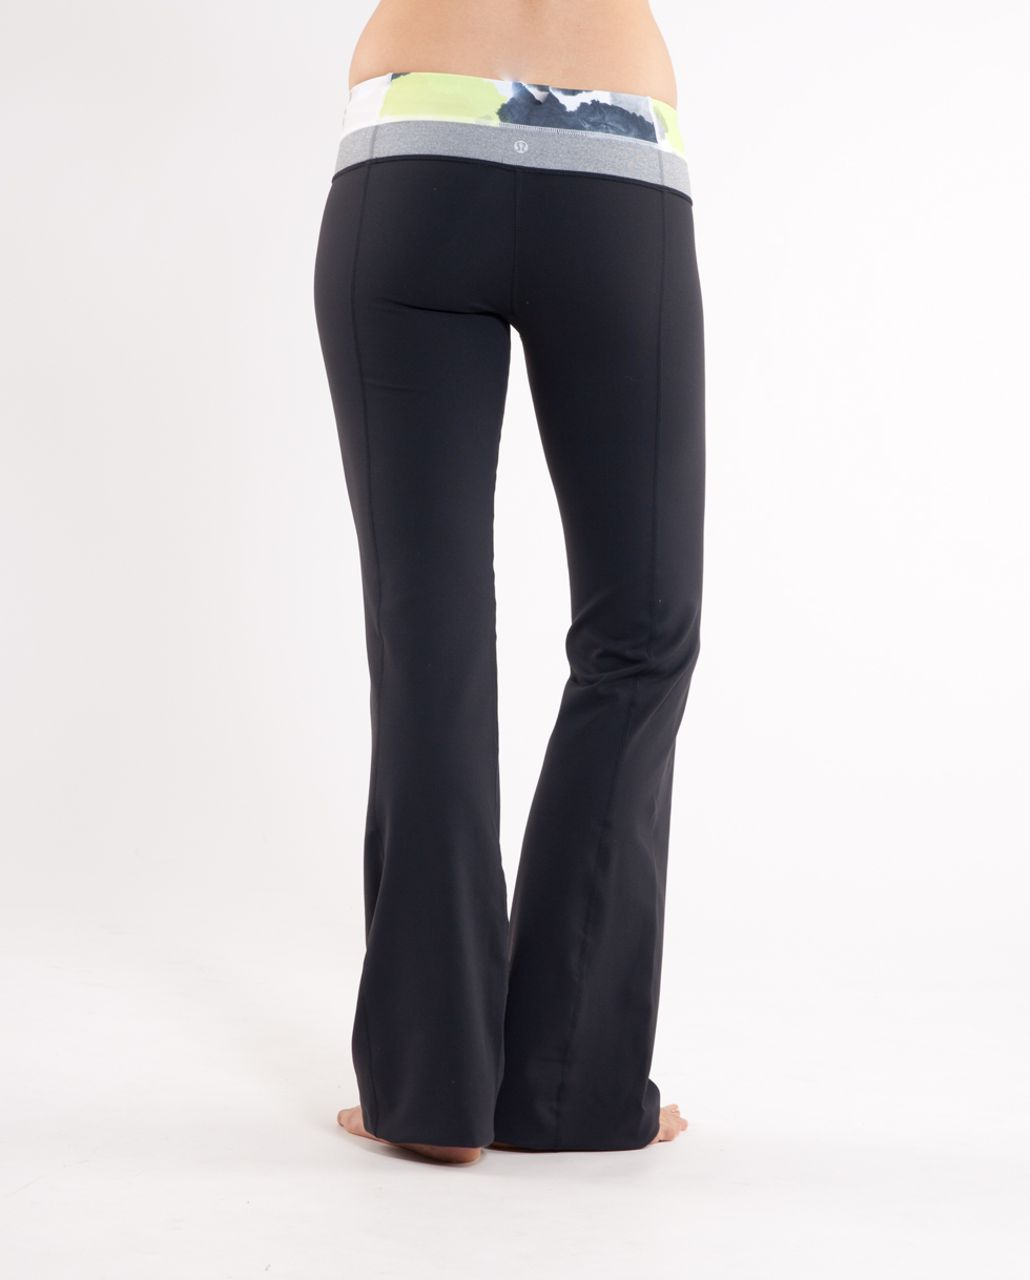 Lululemon Groove Pant (Regular) - Black /  Black Citron Tinted Canvas Super /  Heathered Blurred Grey